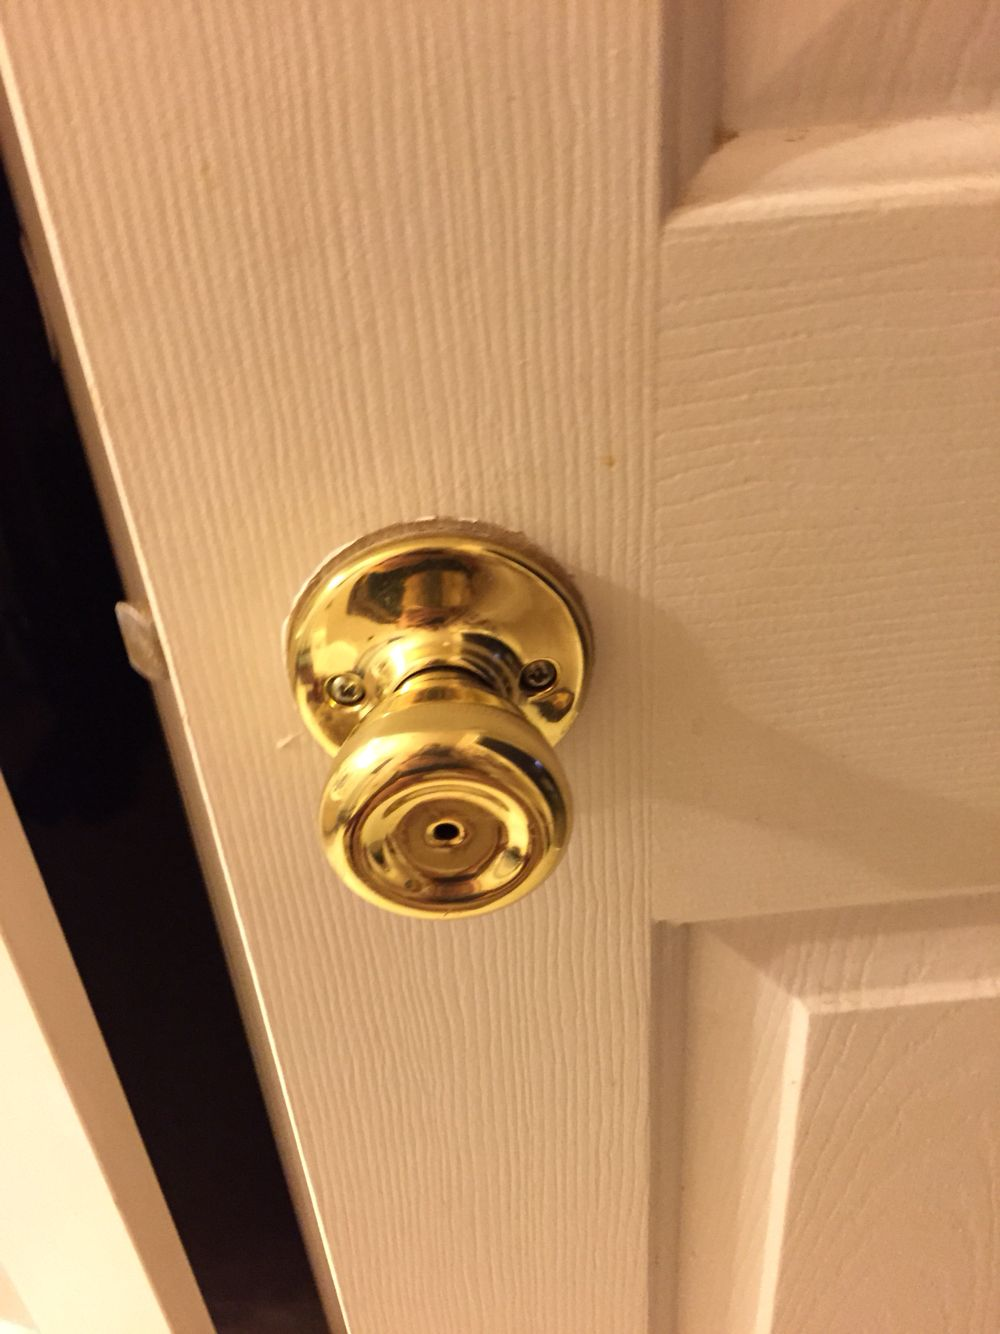 Pin On Doorknobs In My Home